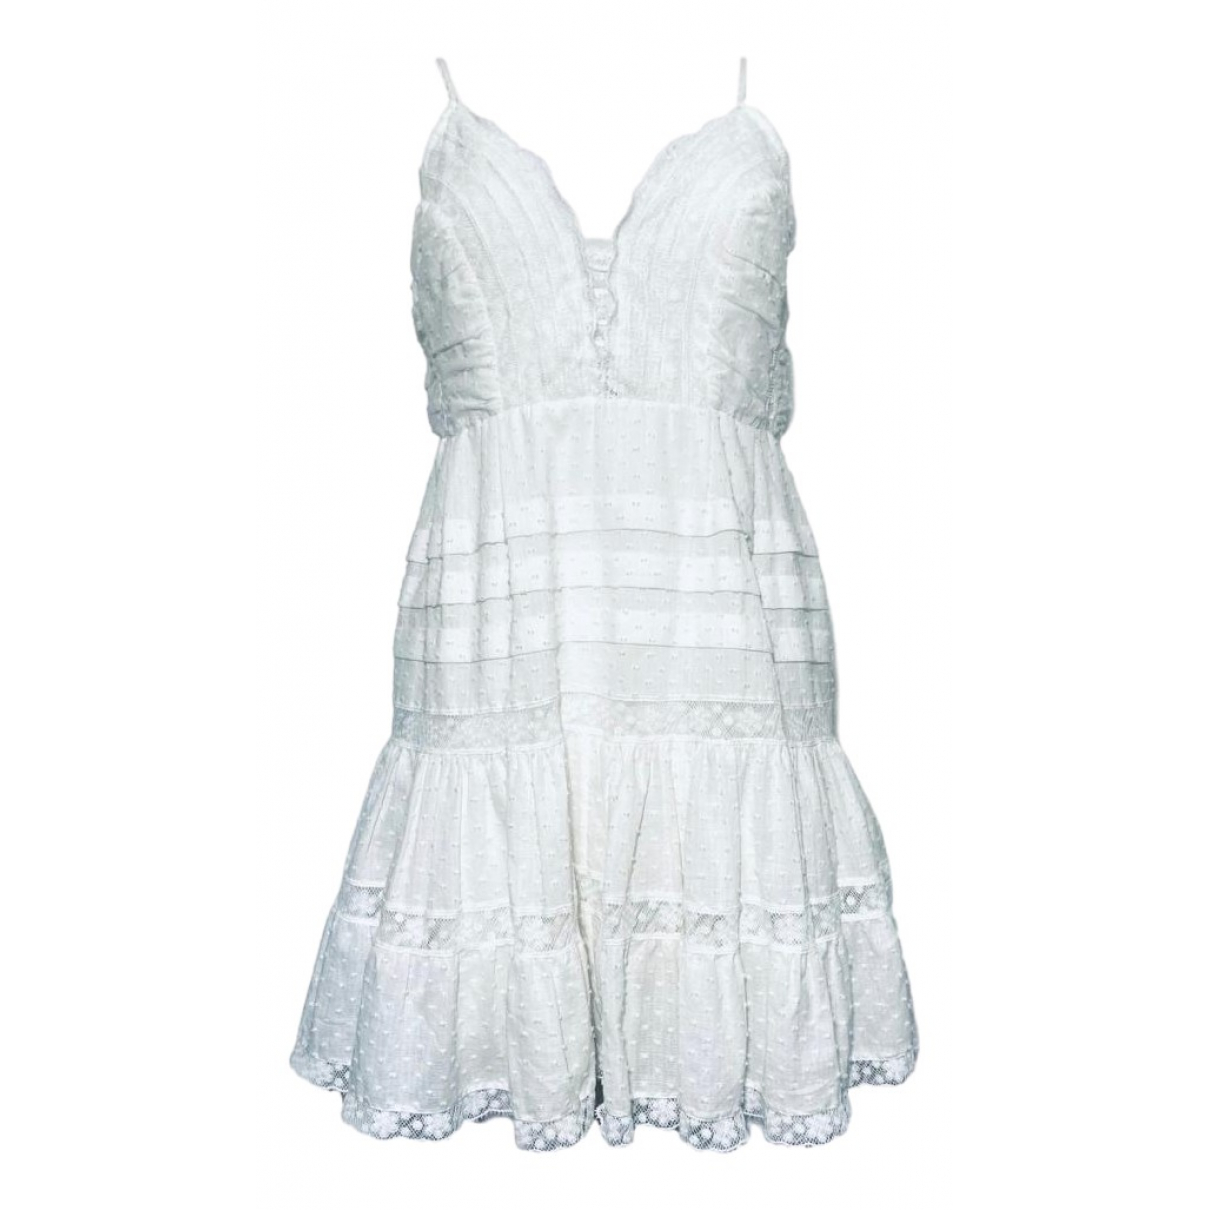 Zimmermann \N White Cotton dress for Women 2 0-5